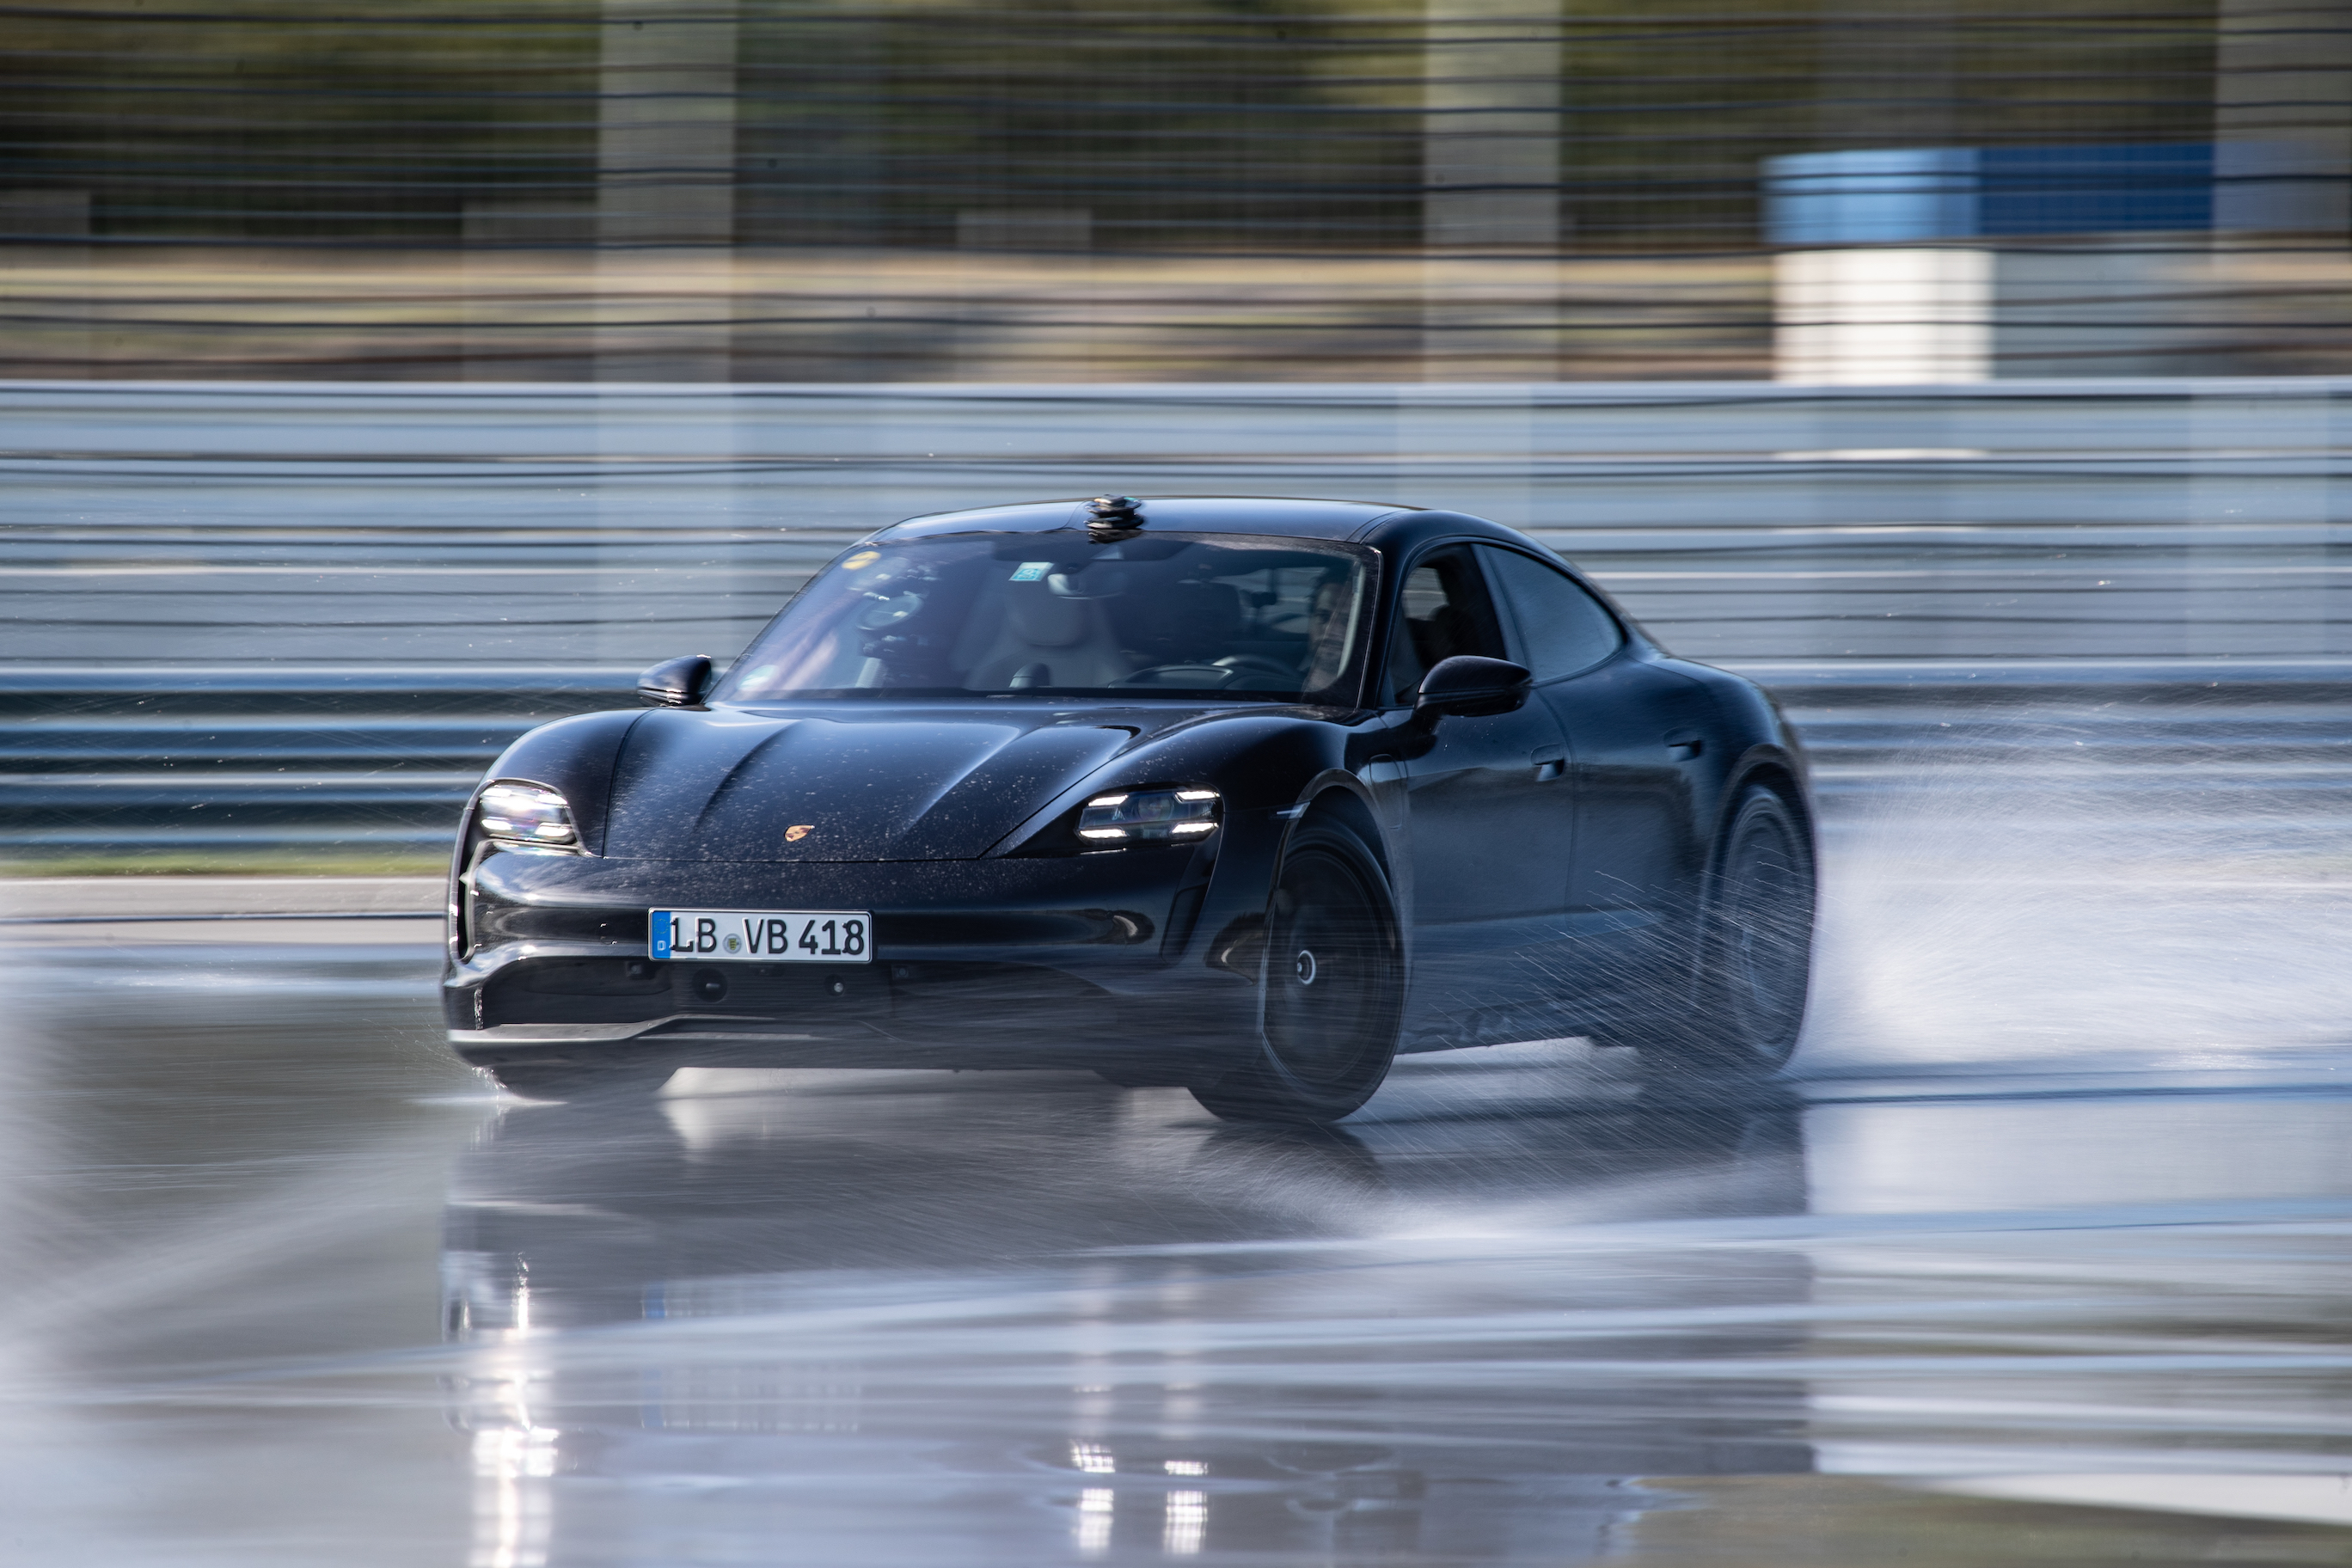 This Porsche Taycan EV drifts into Guinness World Records. No, literally